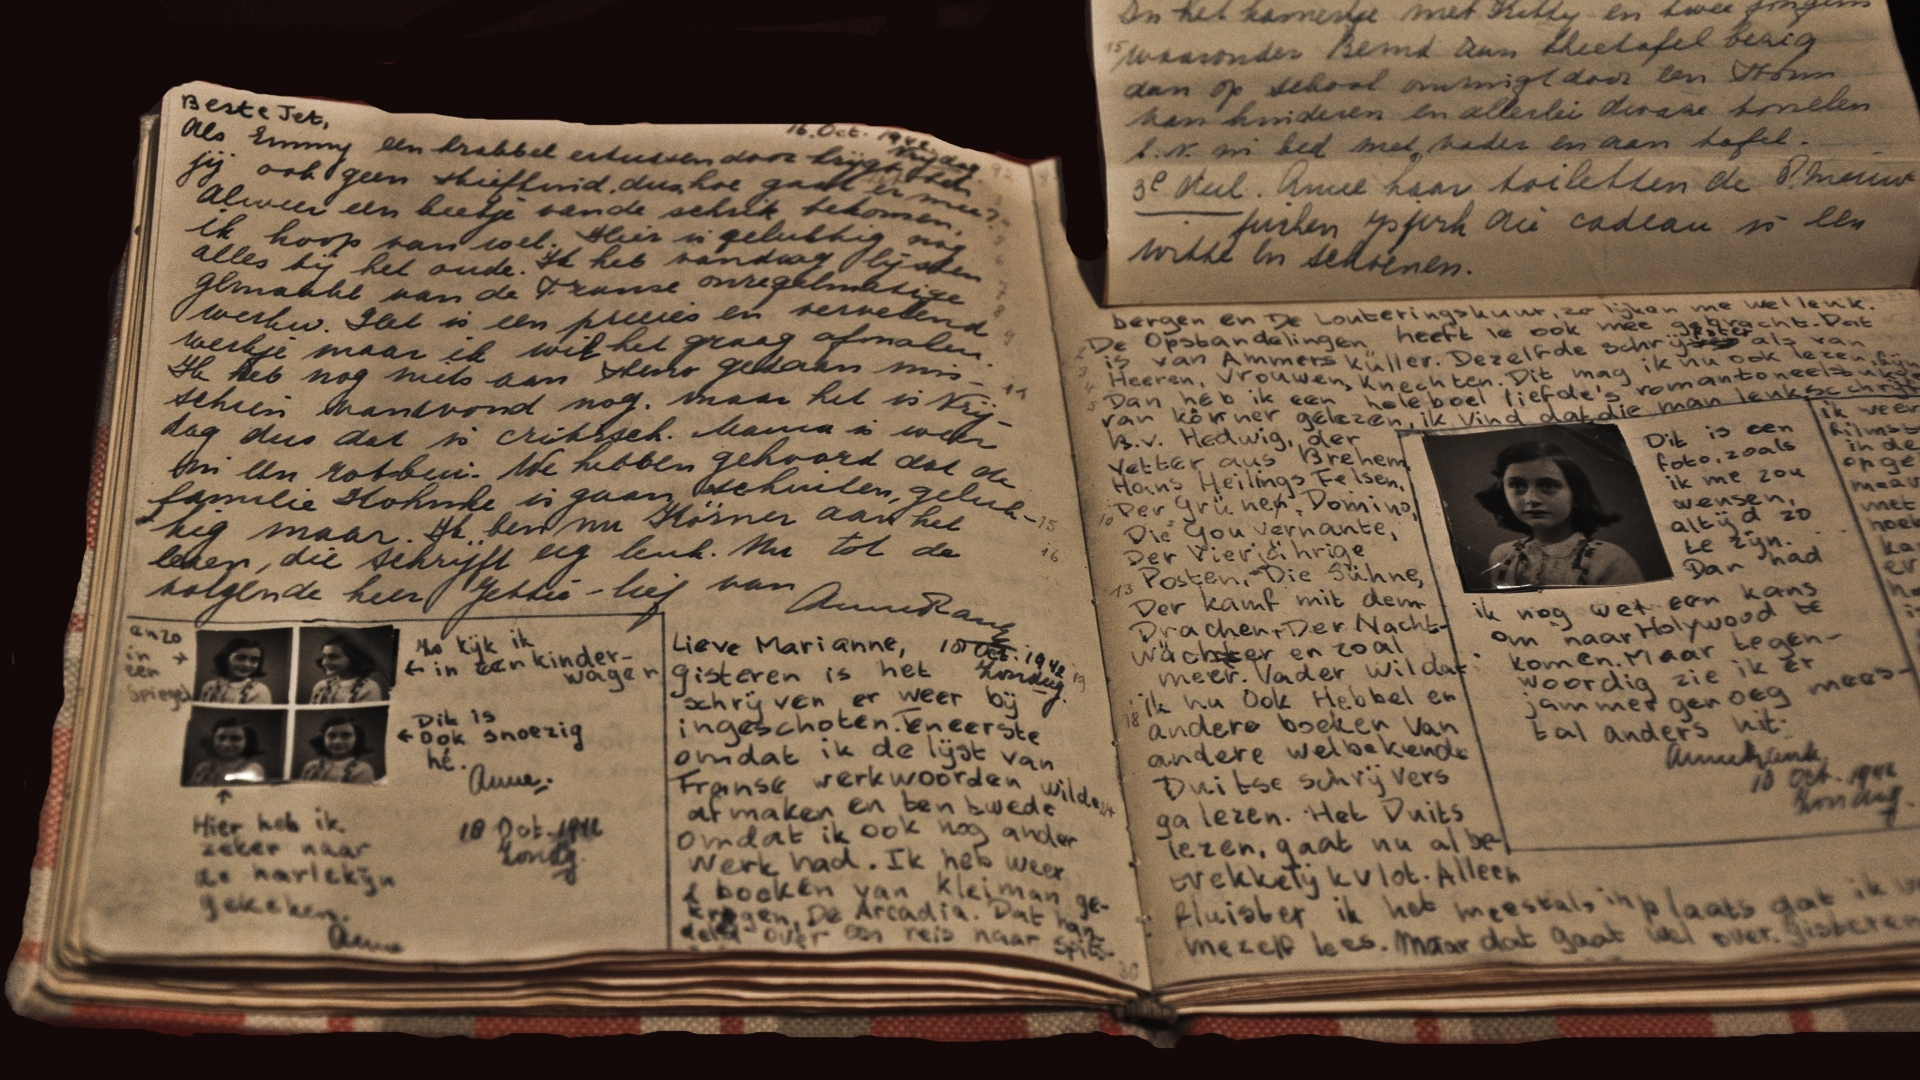 The diary of Anne Frank. Found in the collection of Anne Frank House Museum, Amsterdam. (Credit: Fine Art Images/Heritage Images/Getty Images)